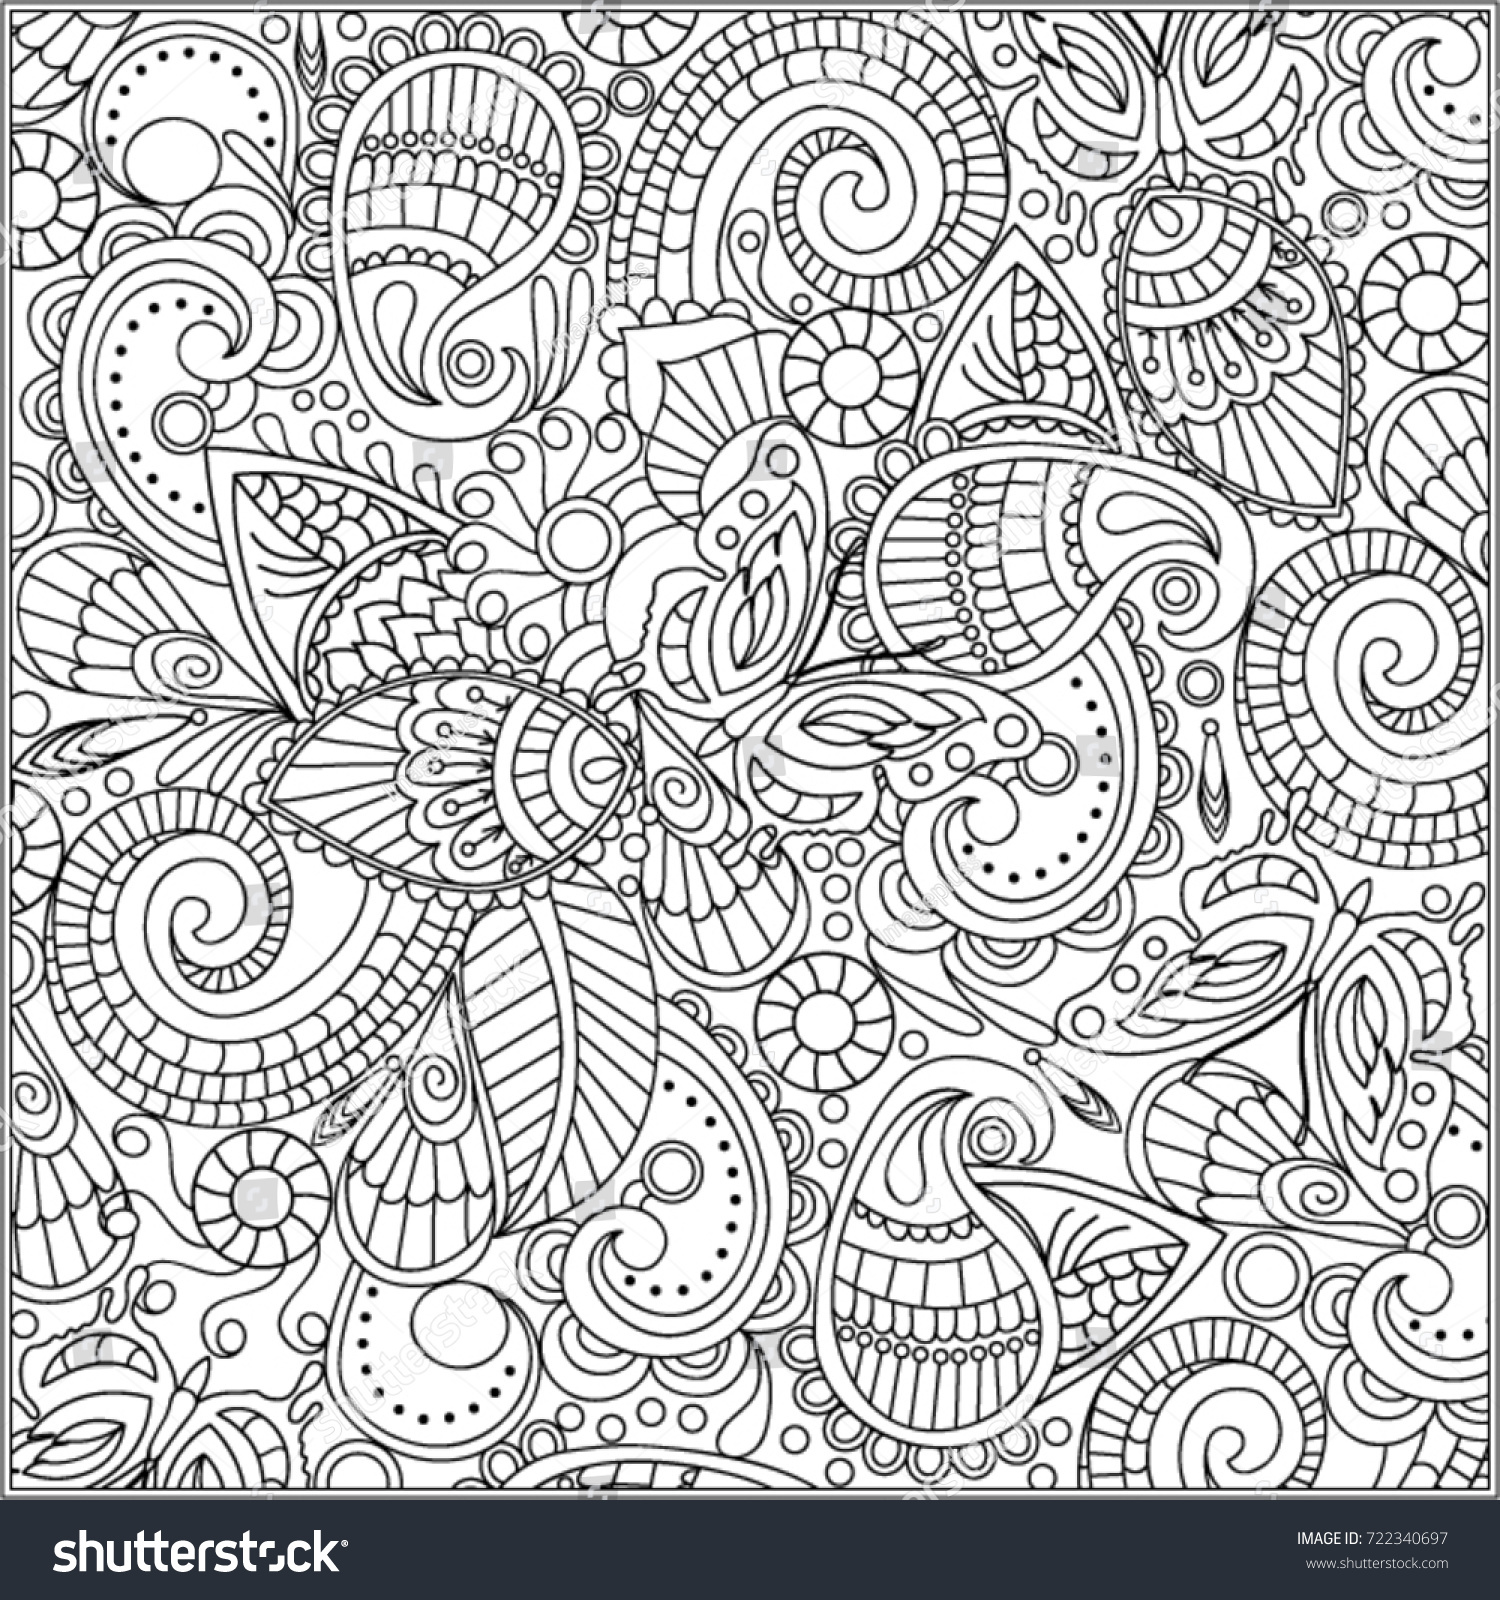 Flower designs coloring book - Flower Coloring Book Page